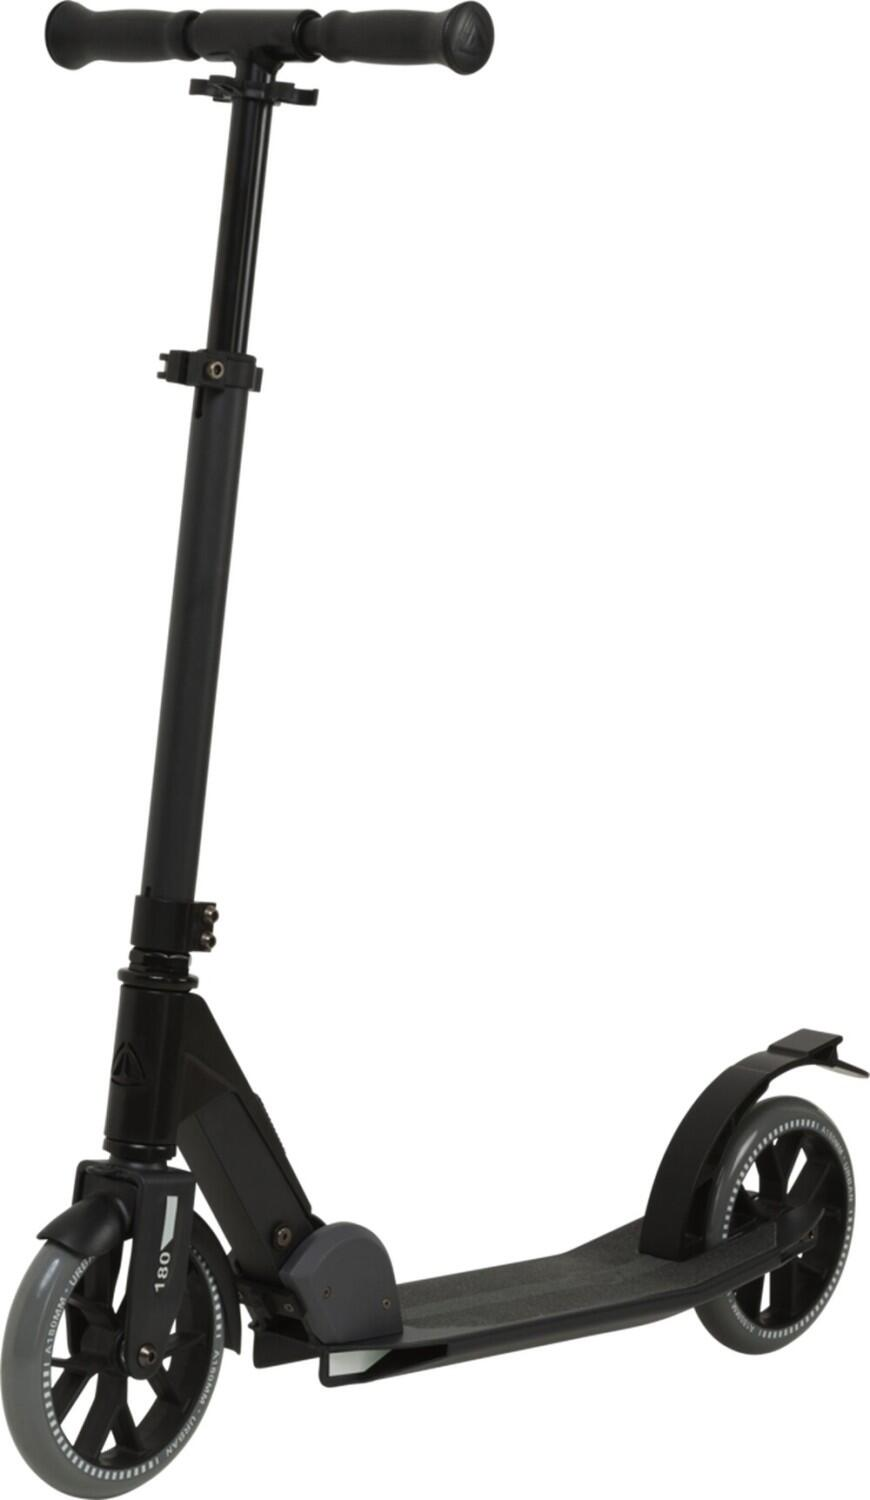 Firefly A180 Scooter